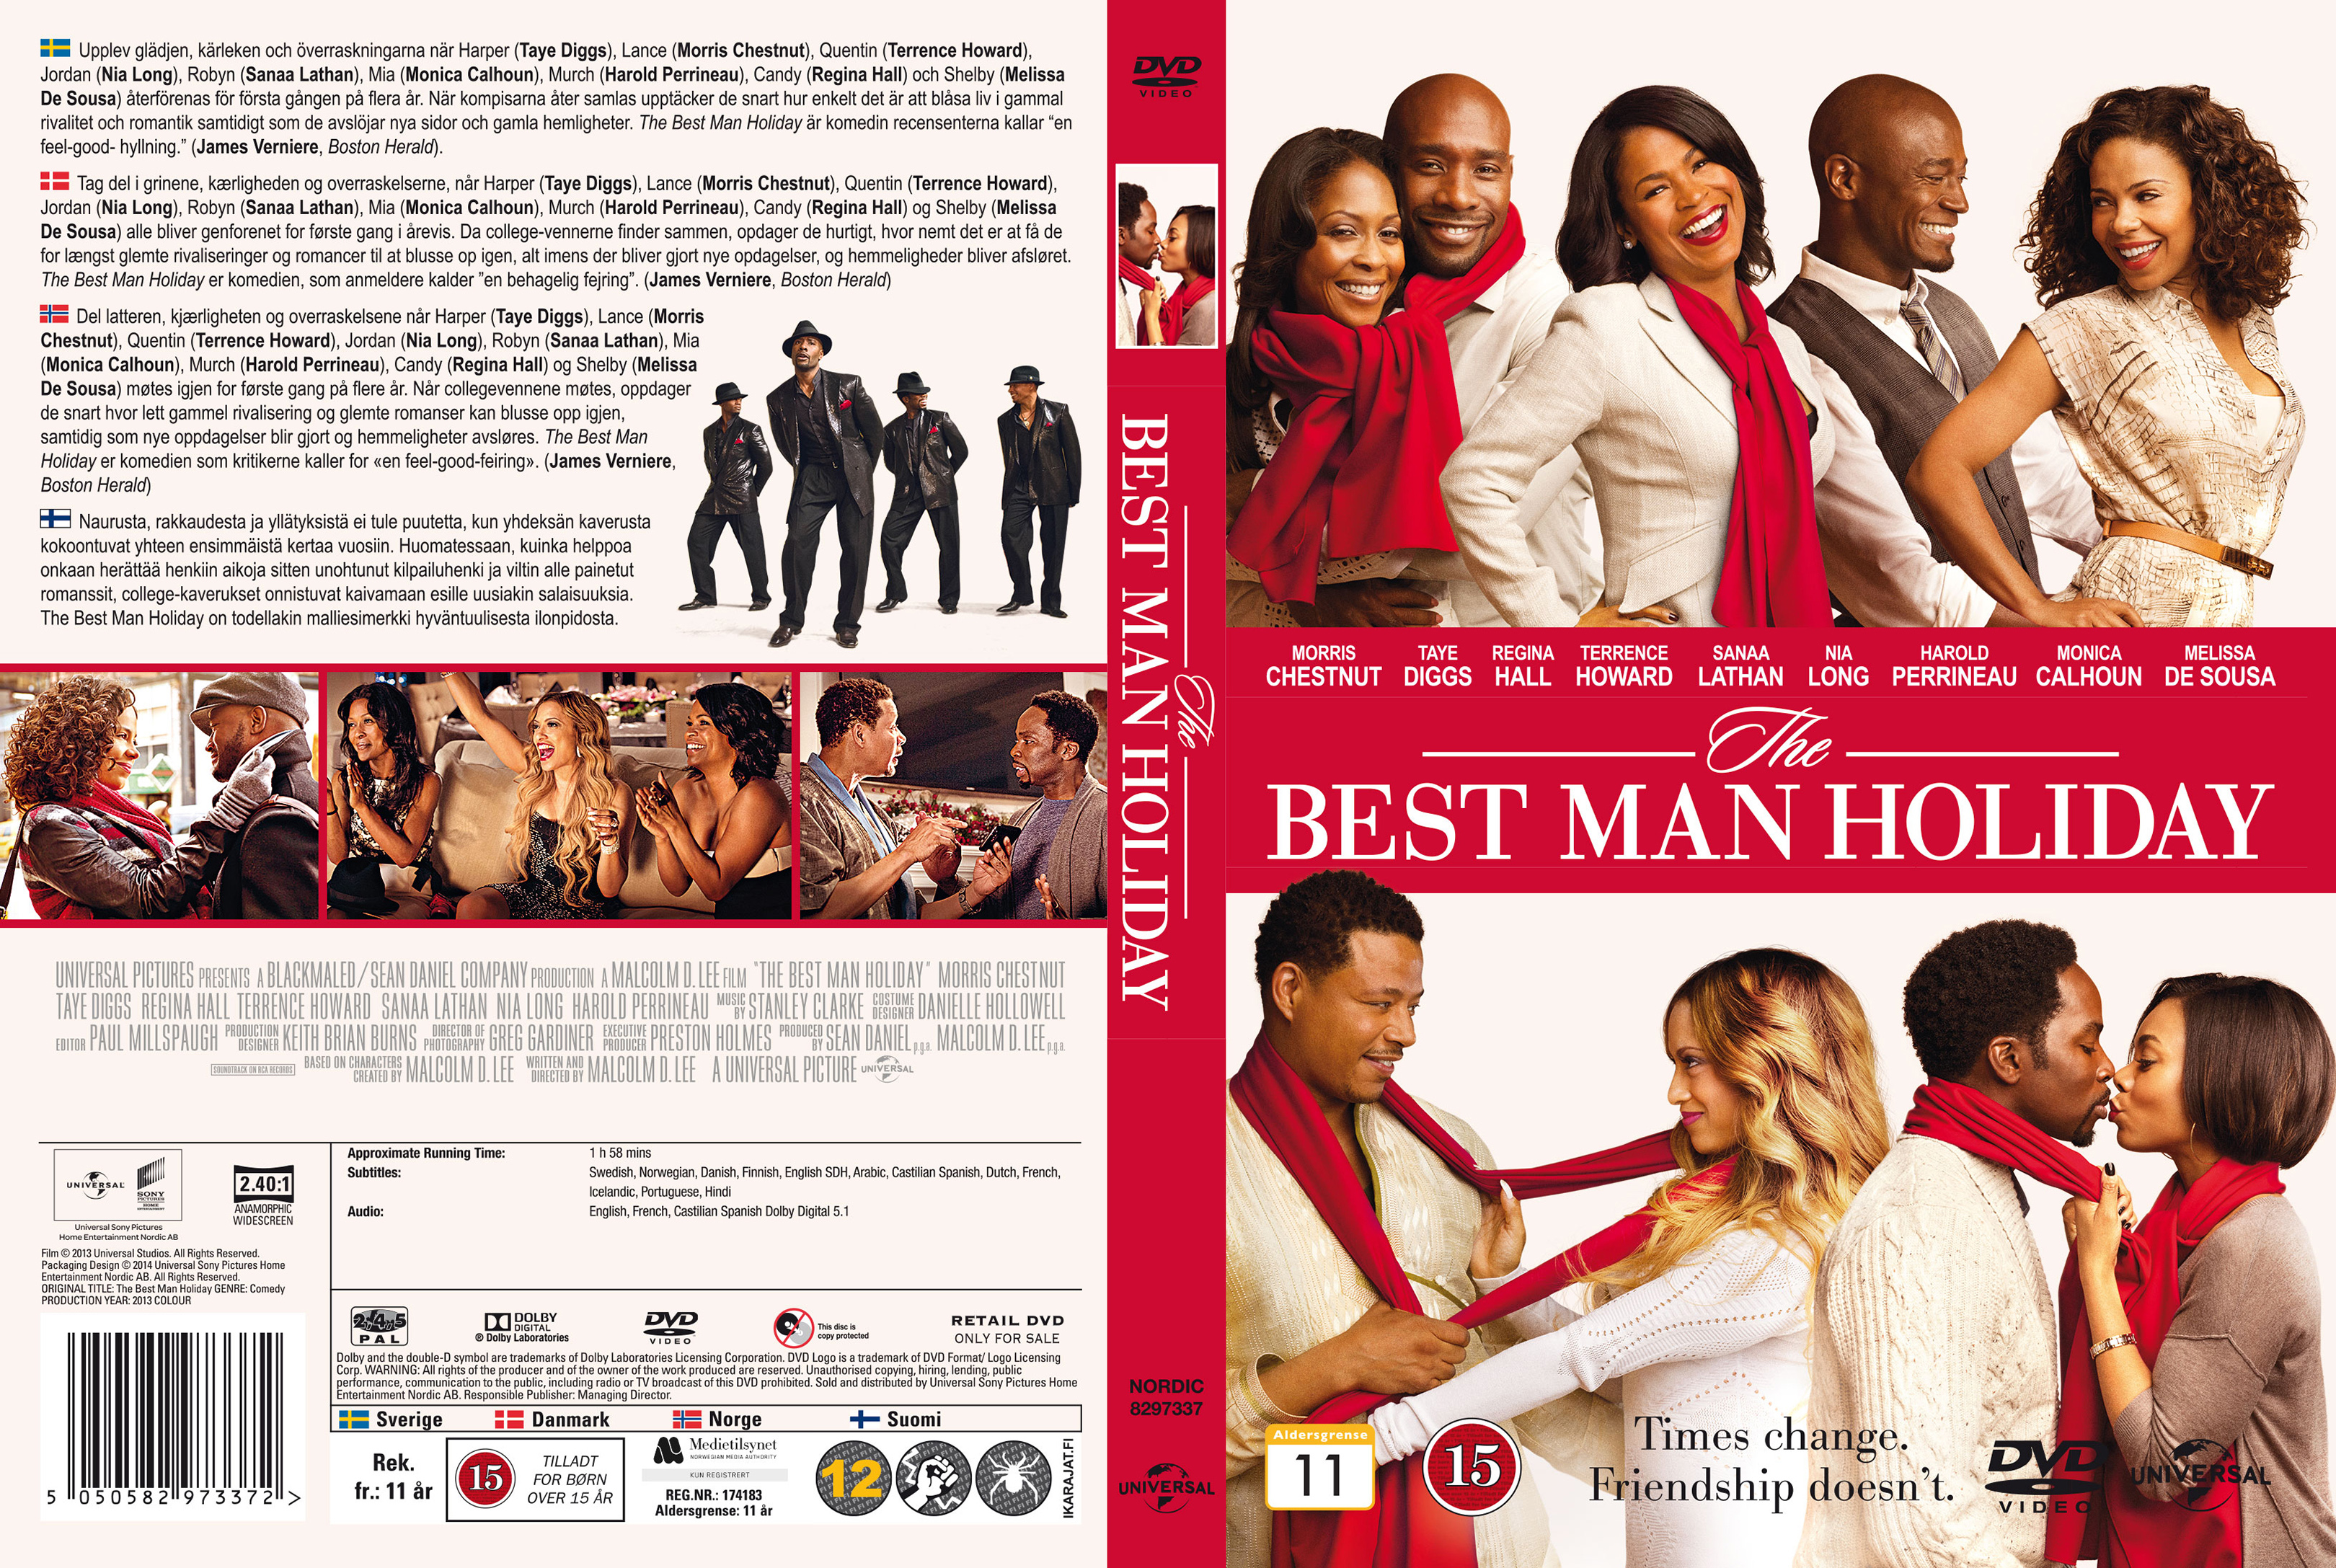 the best man holiday 2 movie download